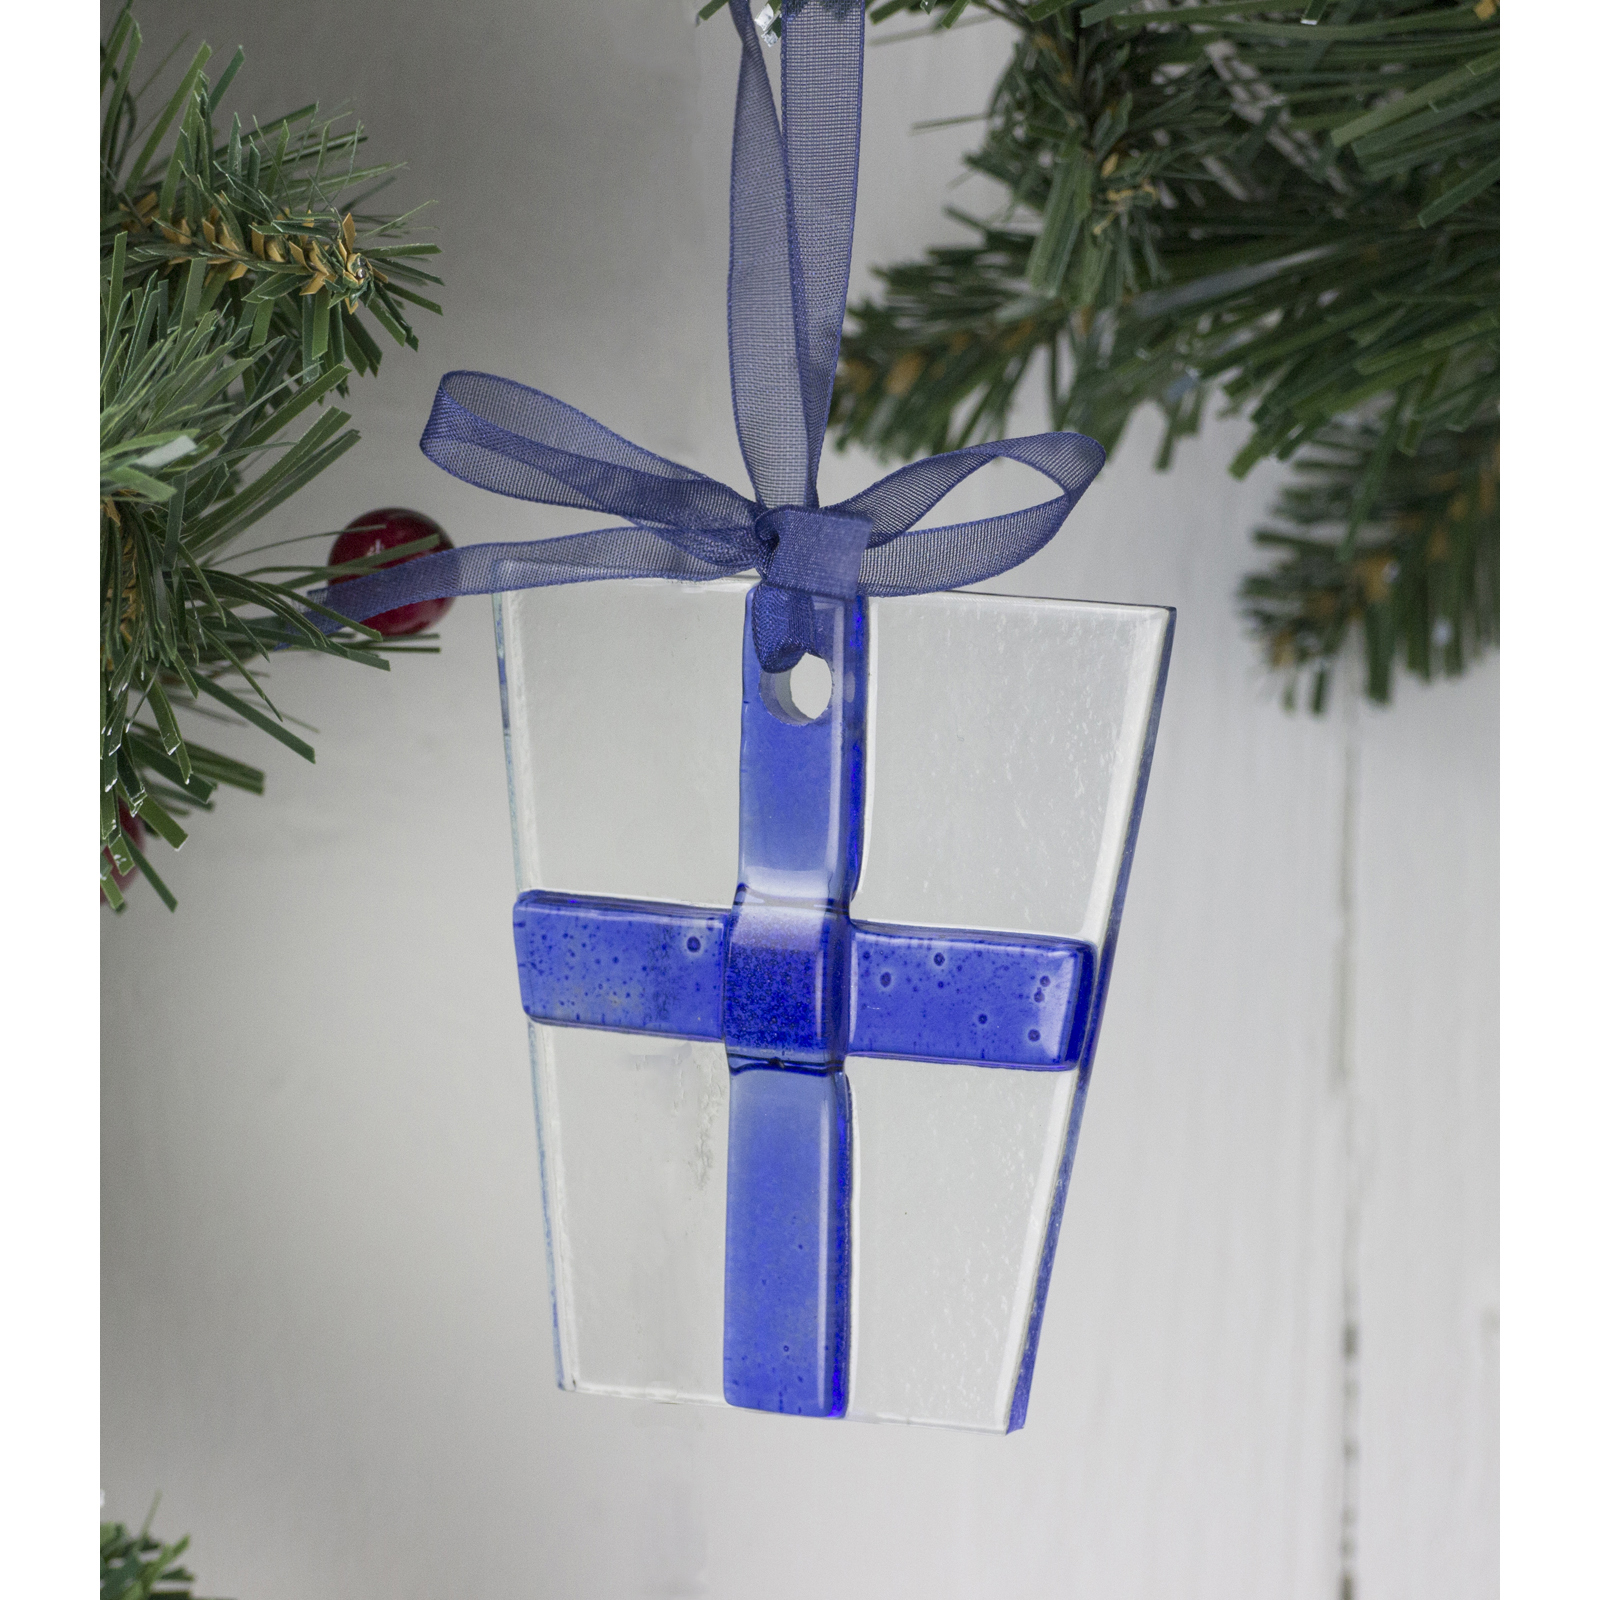 Cobalt Blue Glass Nordic Lights Gift Christmas Tree Decoration by Jo Downs